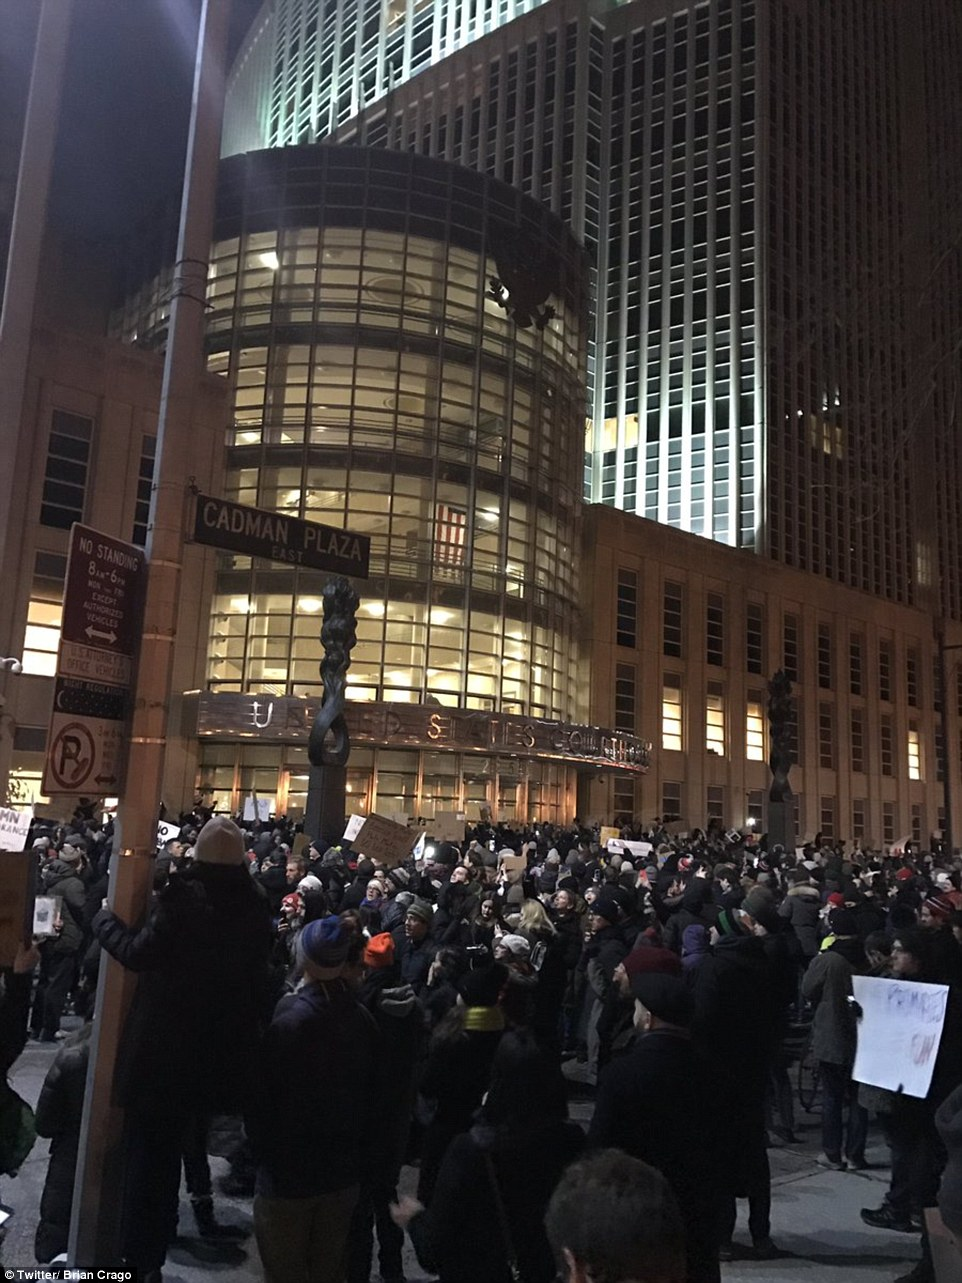 A crowd of protesters gathered on Brooklyn's Cadman Plaza Saturday night, outside of the federal court for the Eastern District of New York that issued the stay